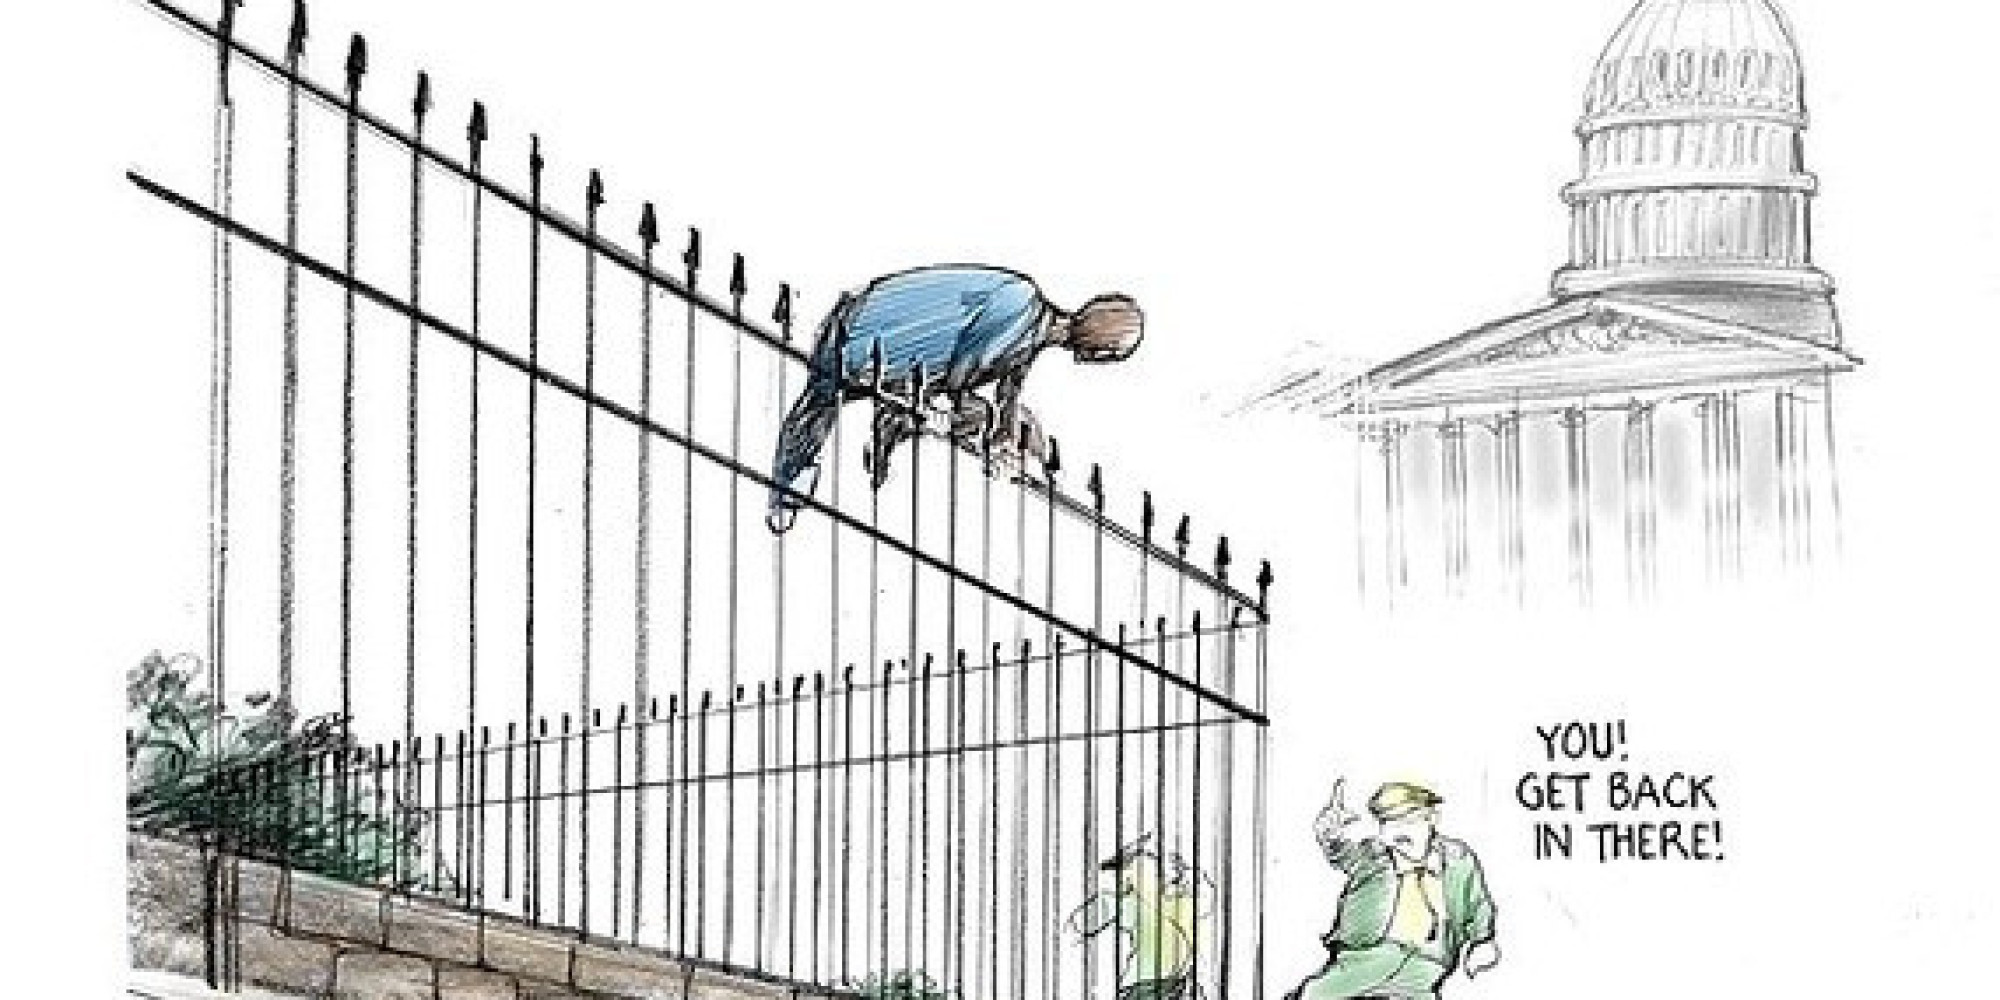 White House Fence Climber Huffpost